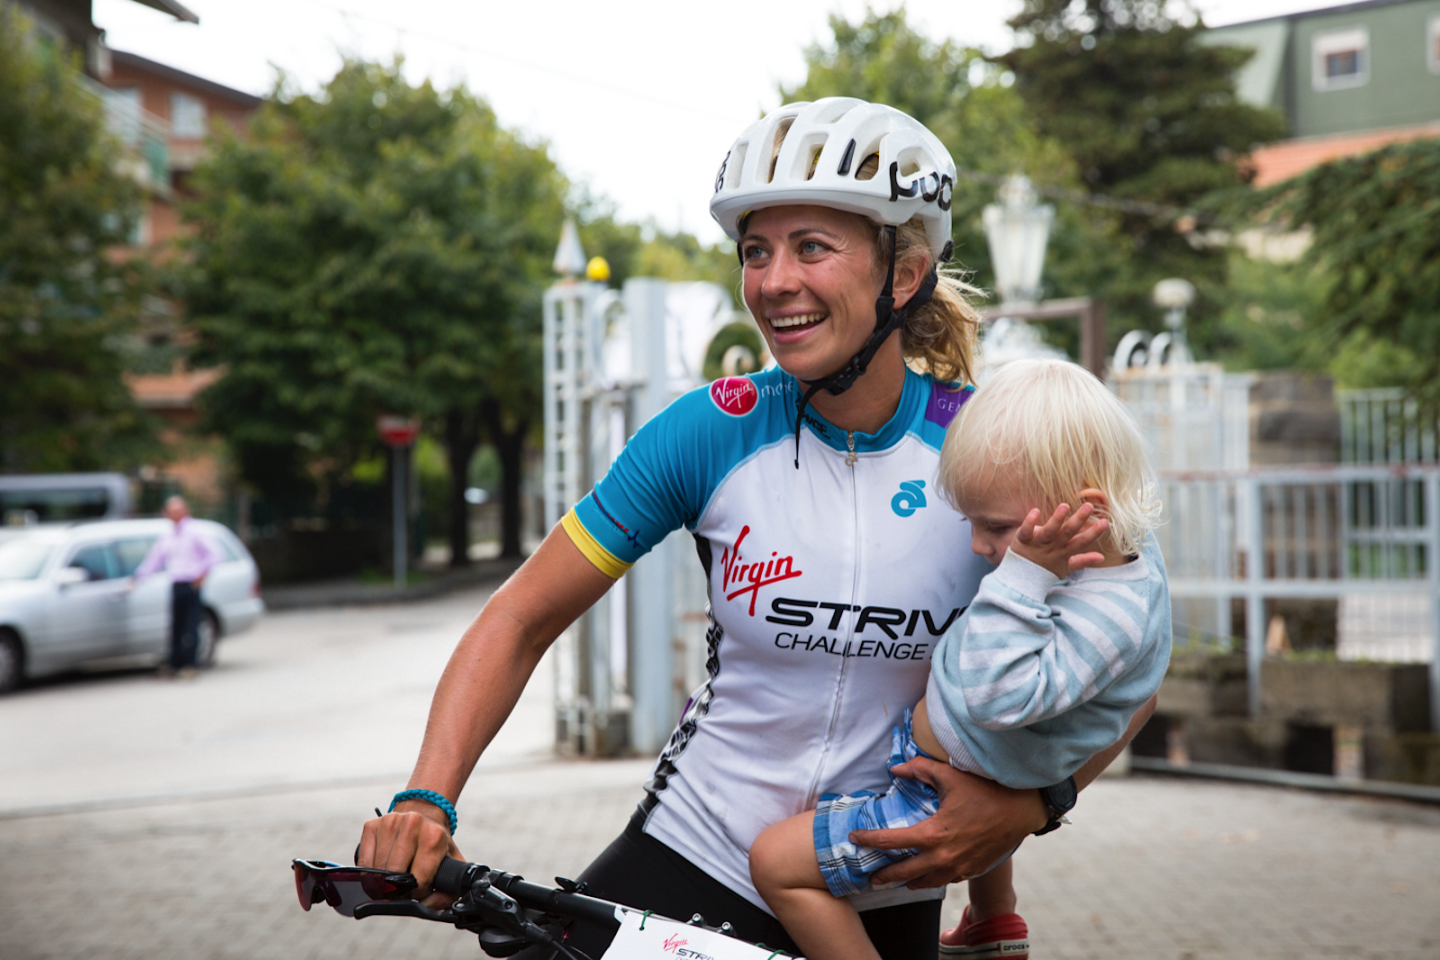 Holly Branson on her bike during the Strive challenge, pausing to hold one of her children